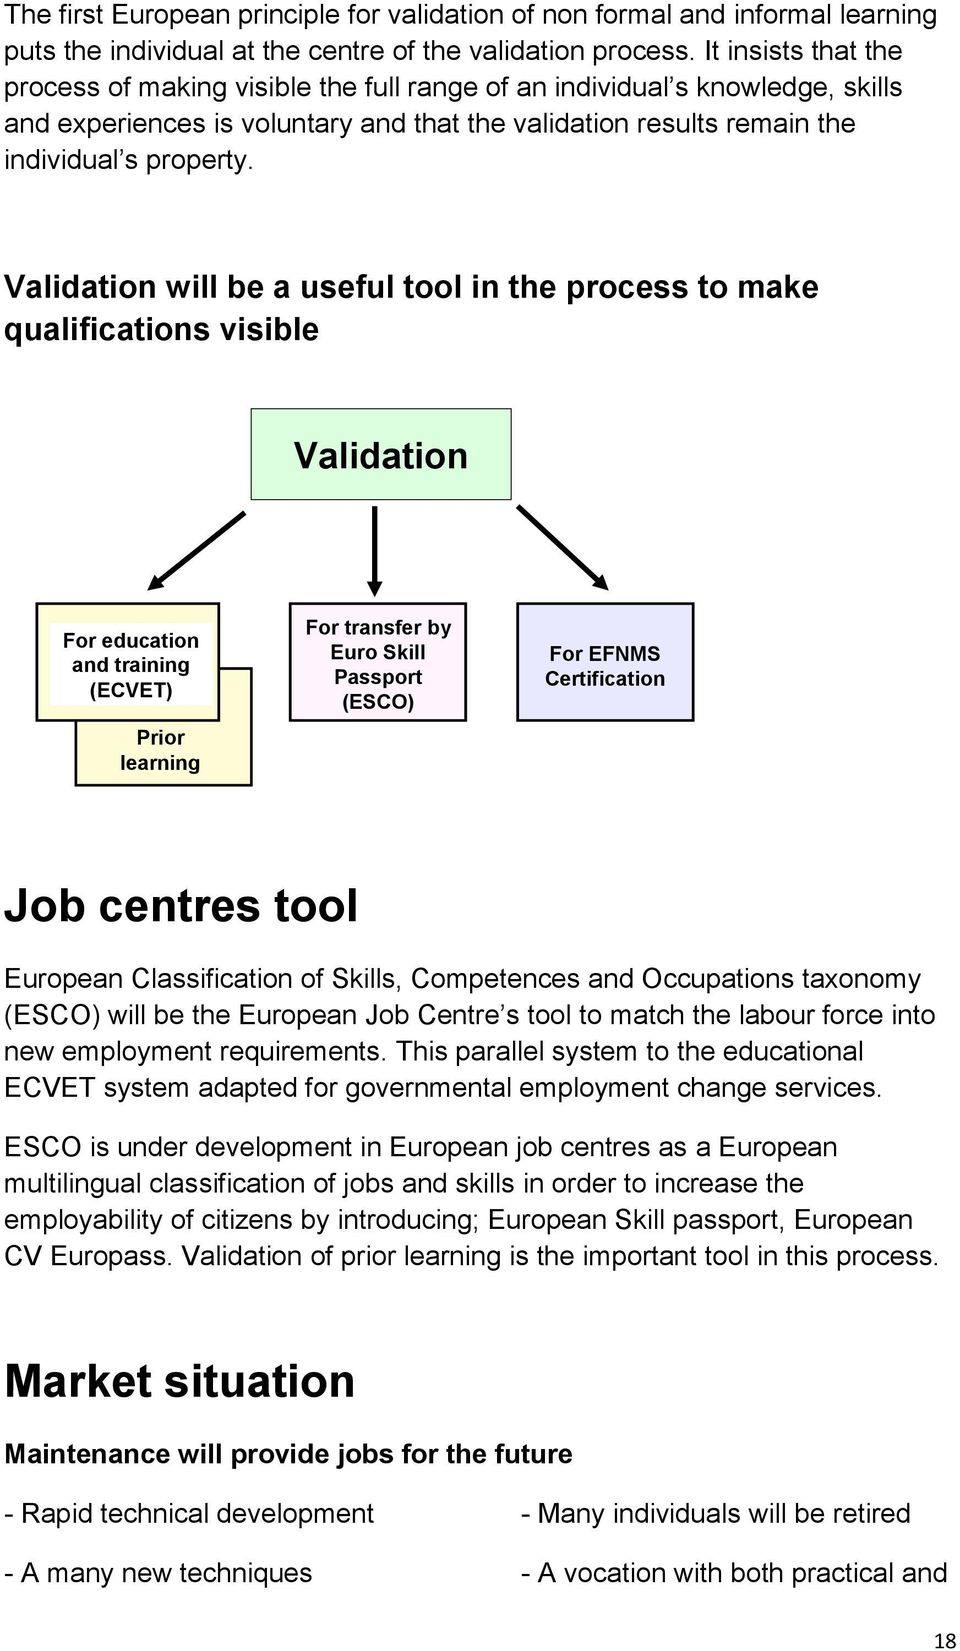 Validation will be a useful tool in the process to make qualifications visible Validation For education and training (ECVET) Prior learning For transfer by Euro Skill Passport (ESCO) For EFNMS